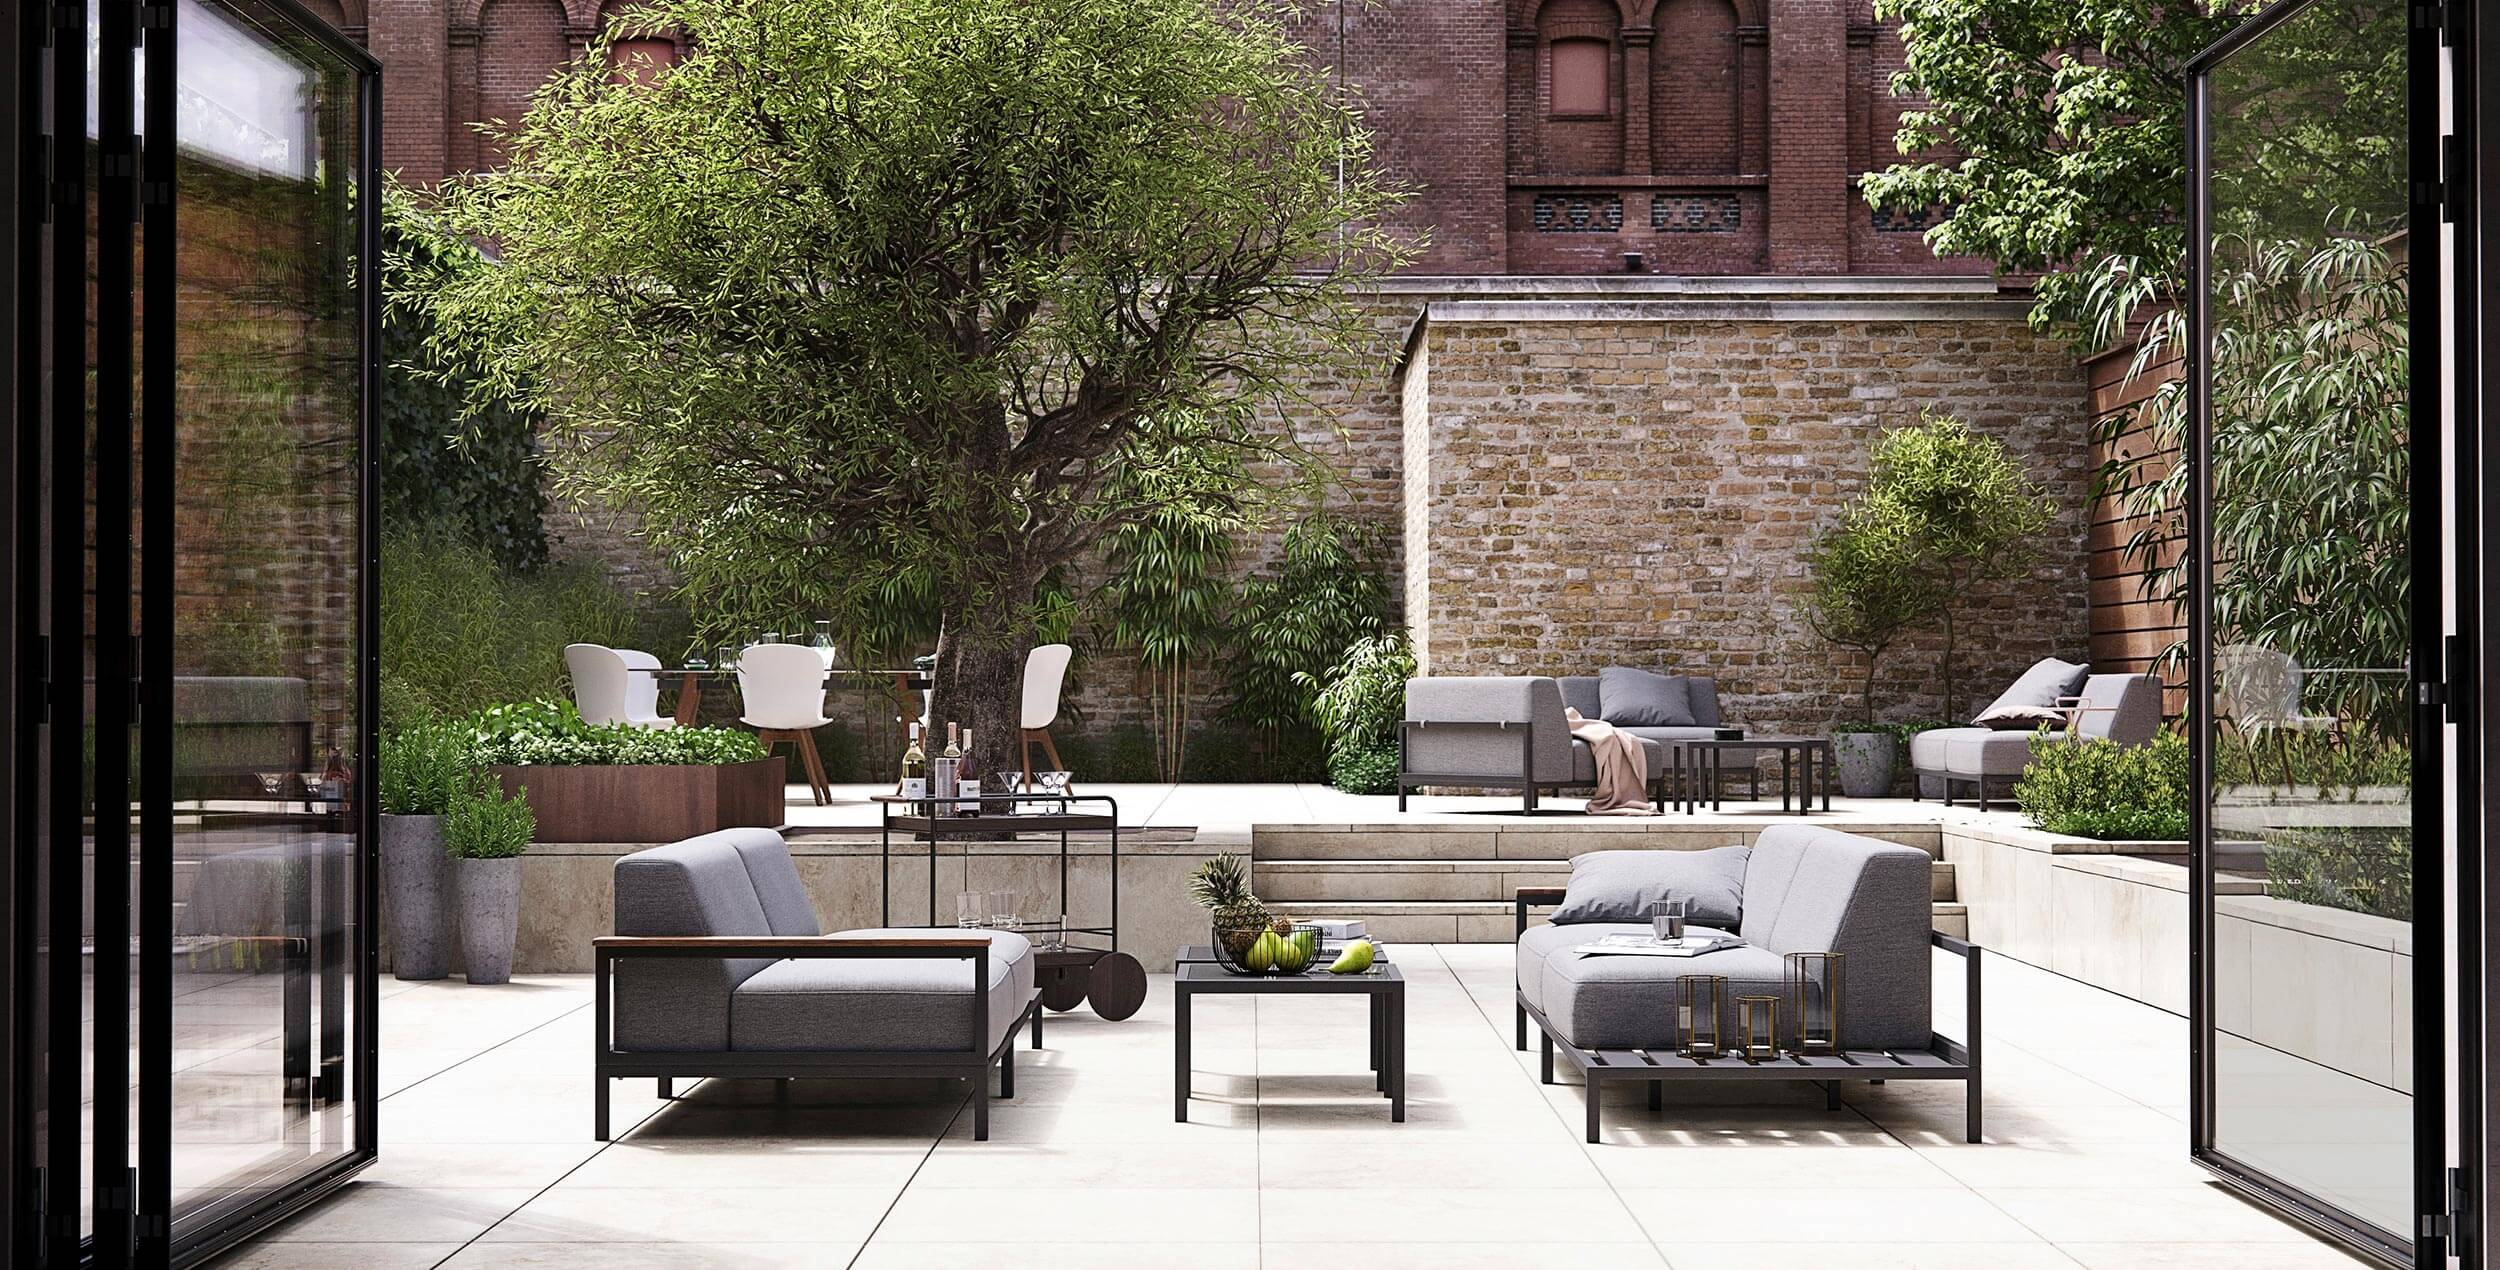 BoConcept's Rome garden sofa system and Adelaide table and chairs in walled terrace garden